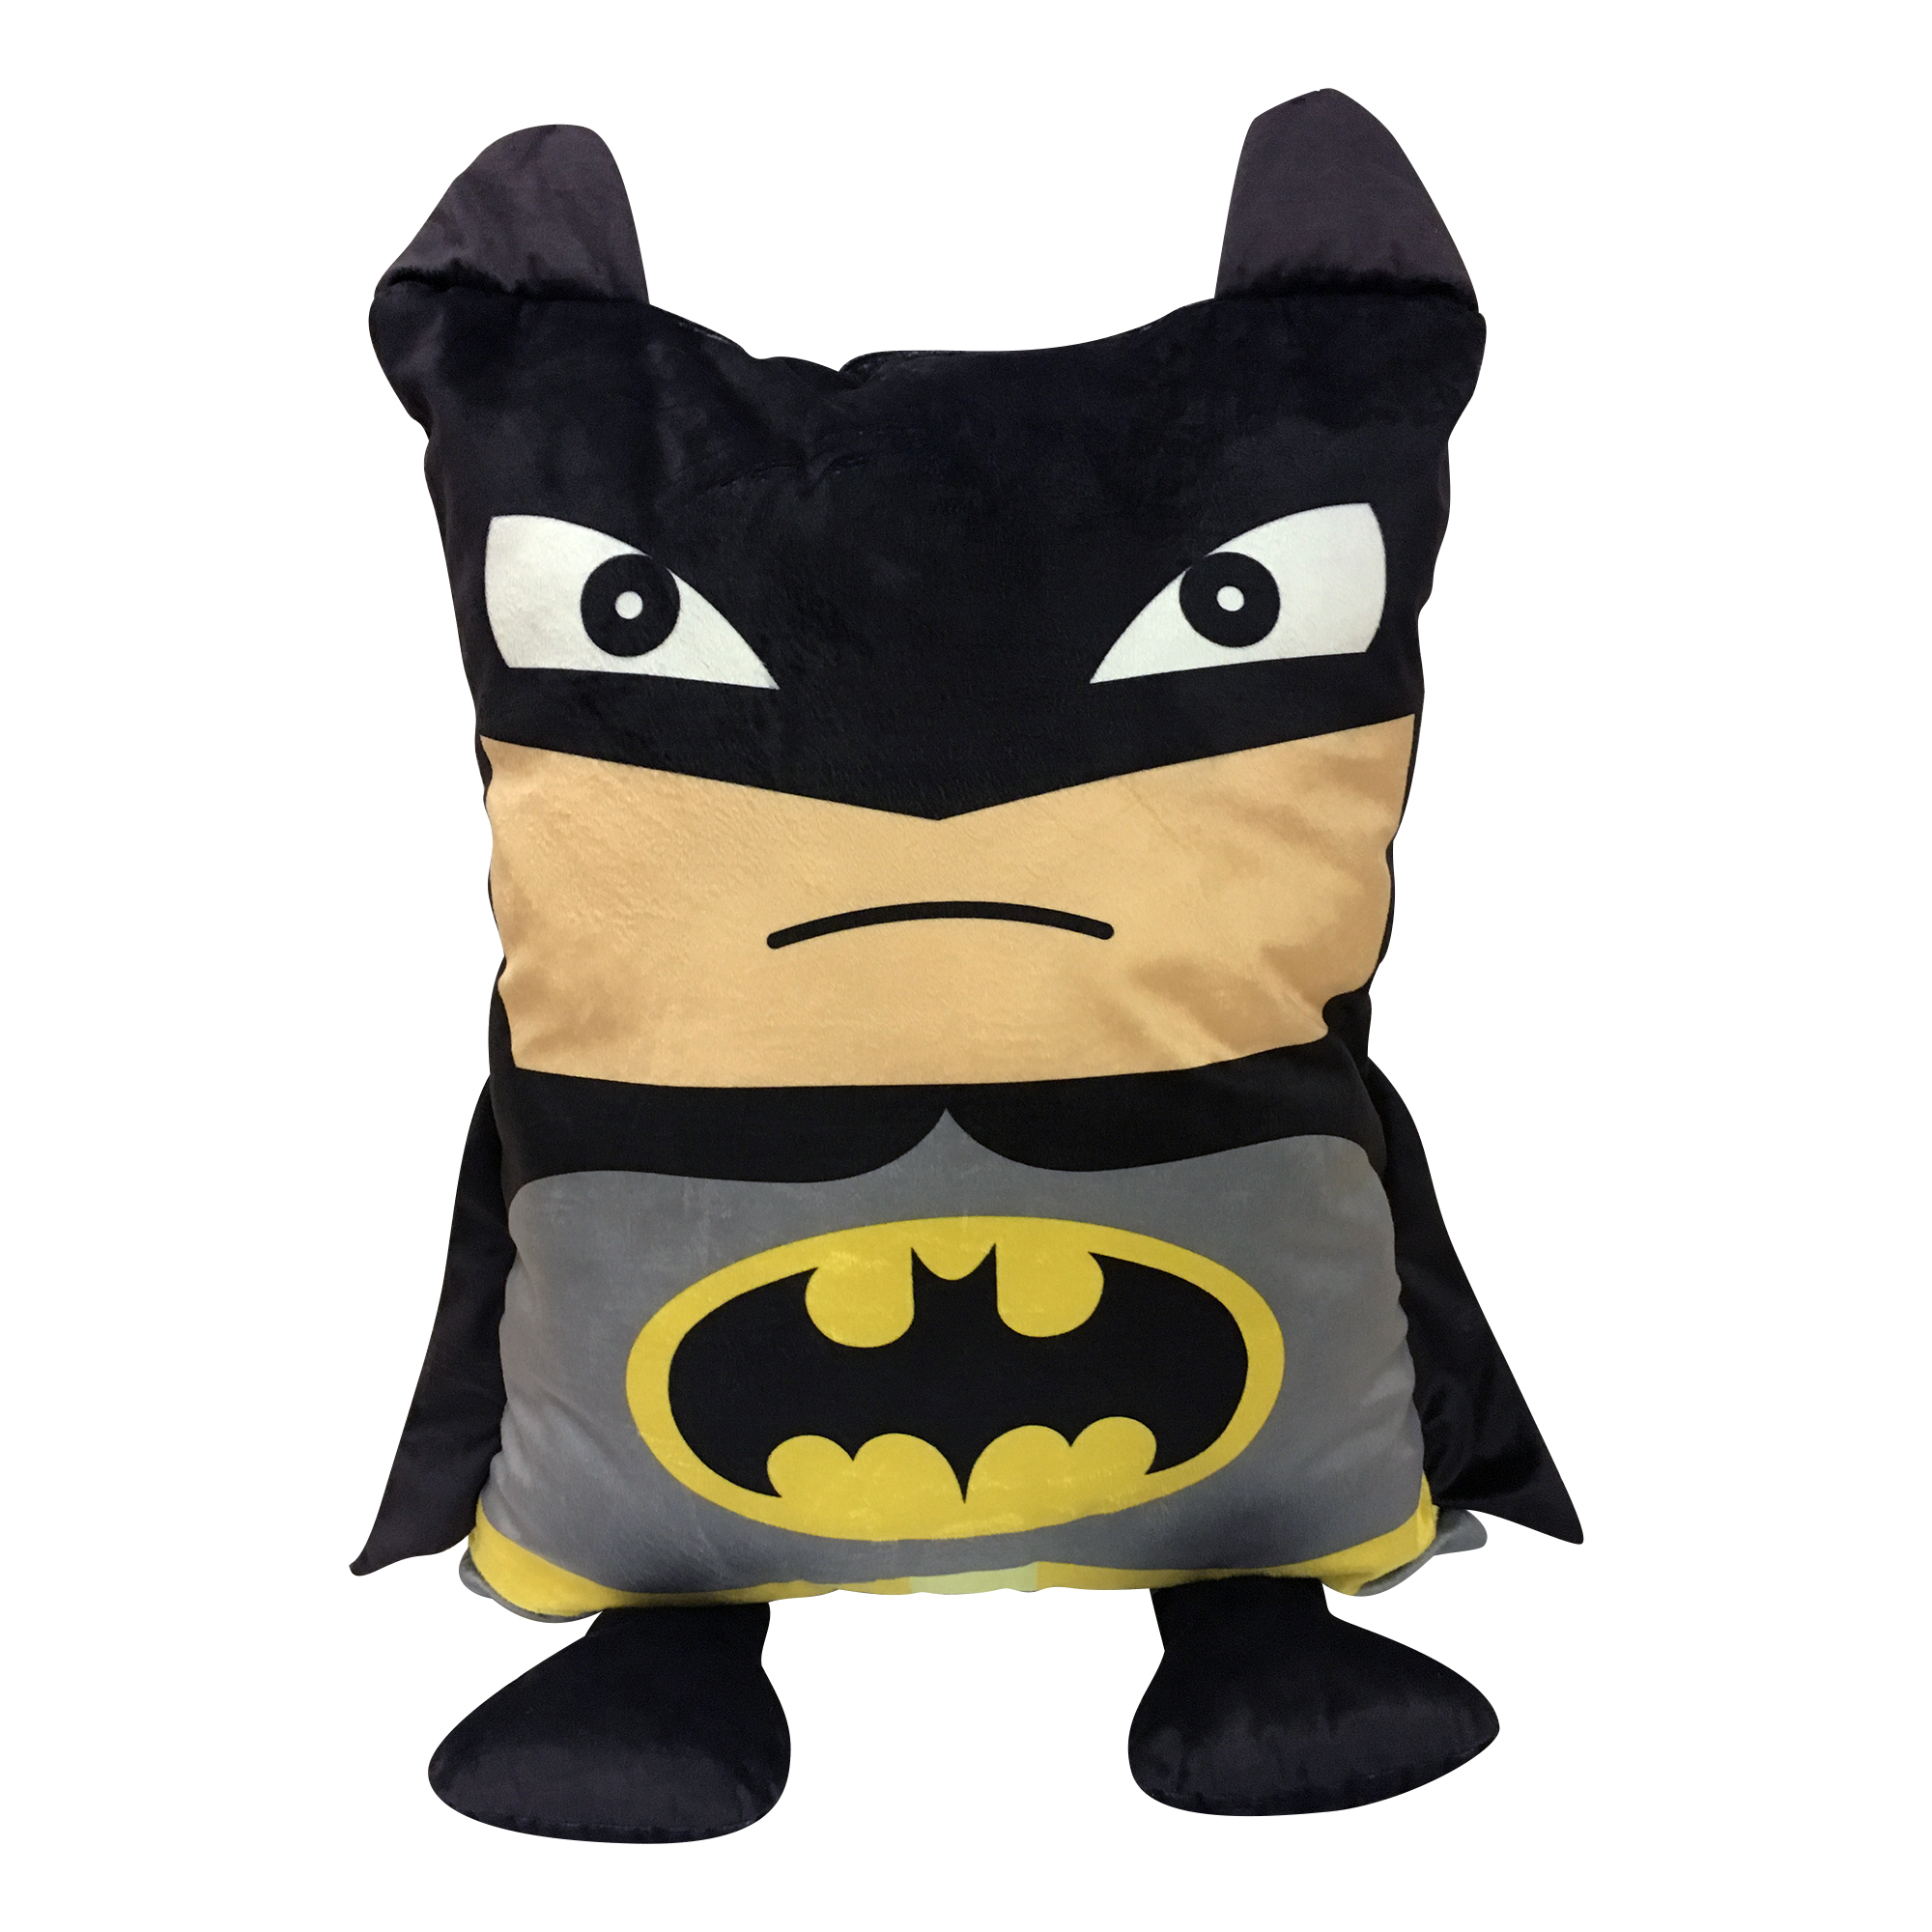 "Warner Brothers Batman ""Bat Mayhem"" 3D Pillow Buddy, 20 x 26"